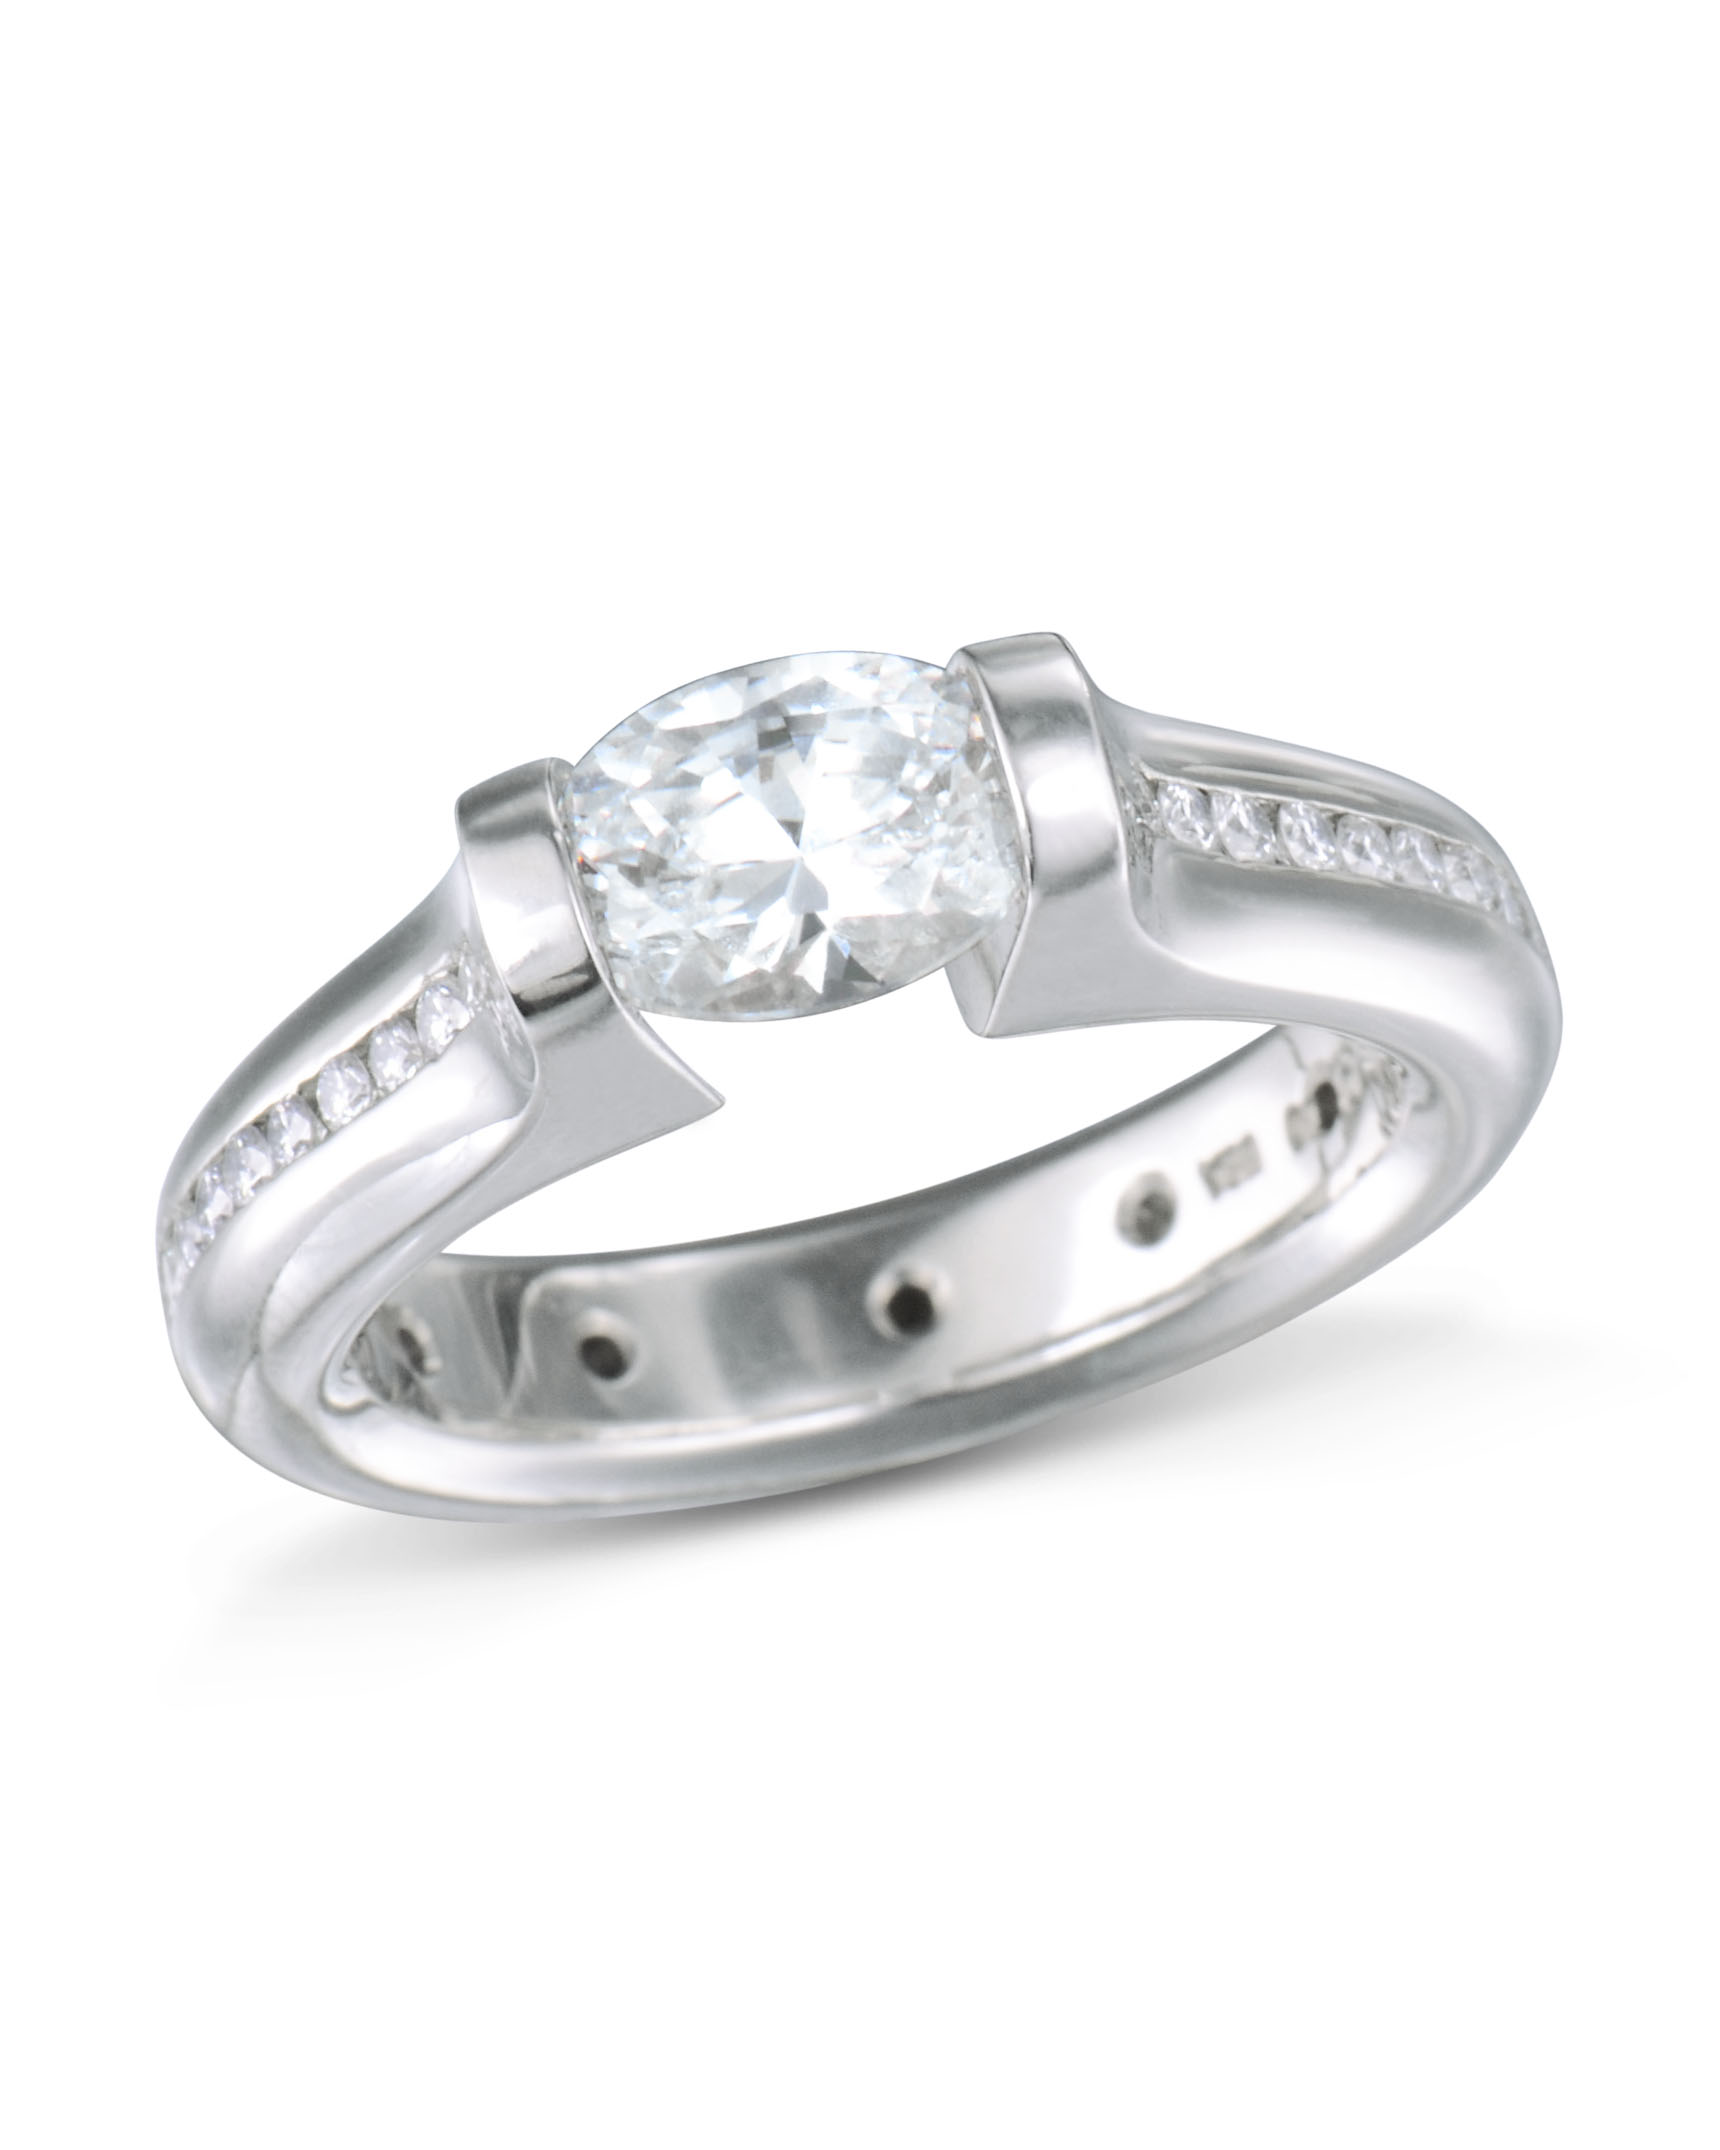 rings of elegant band tension diamond mirell wedding s ring jolie with titanium amp edward unique la engagement set